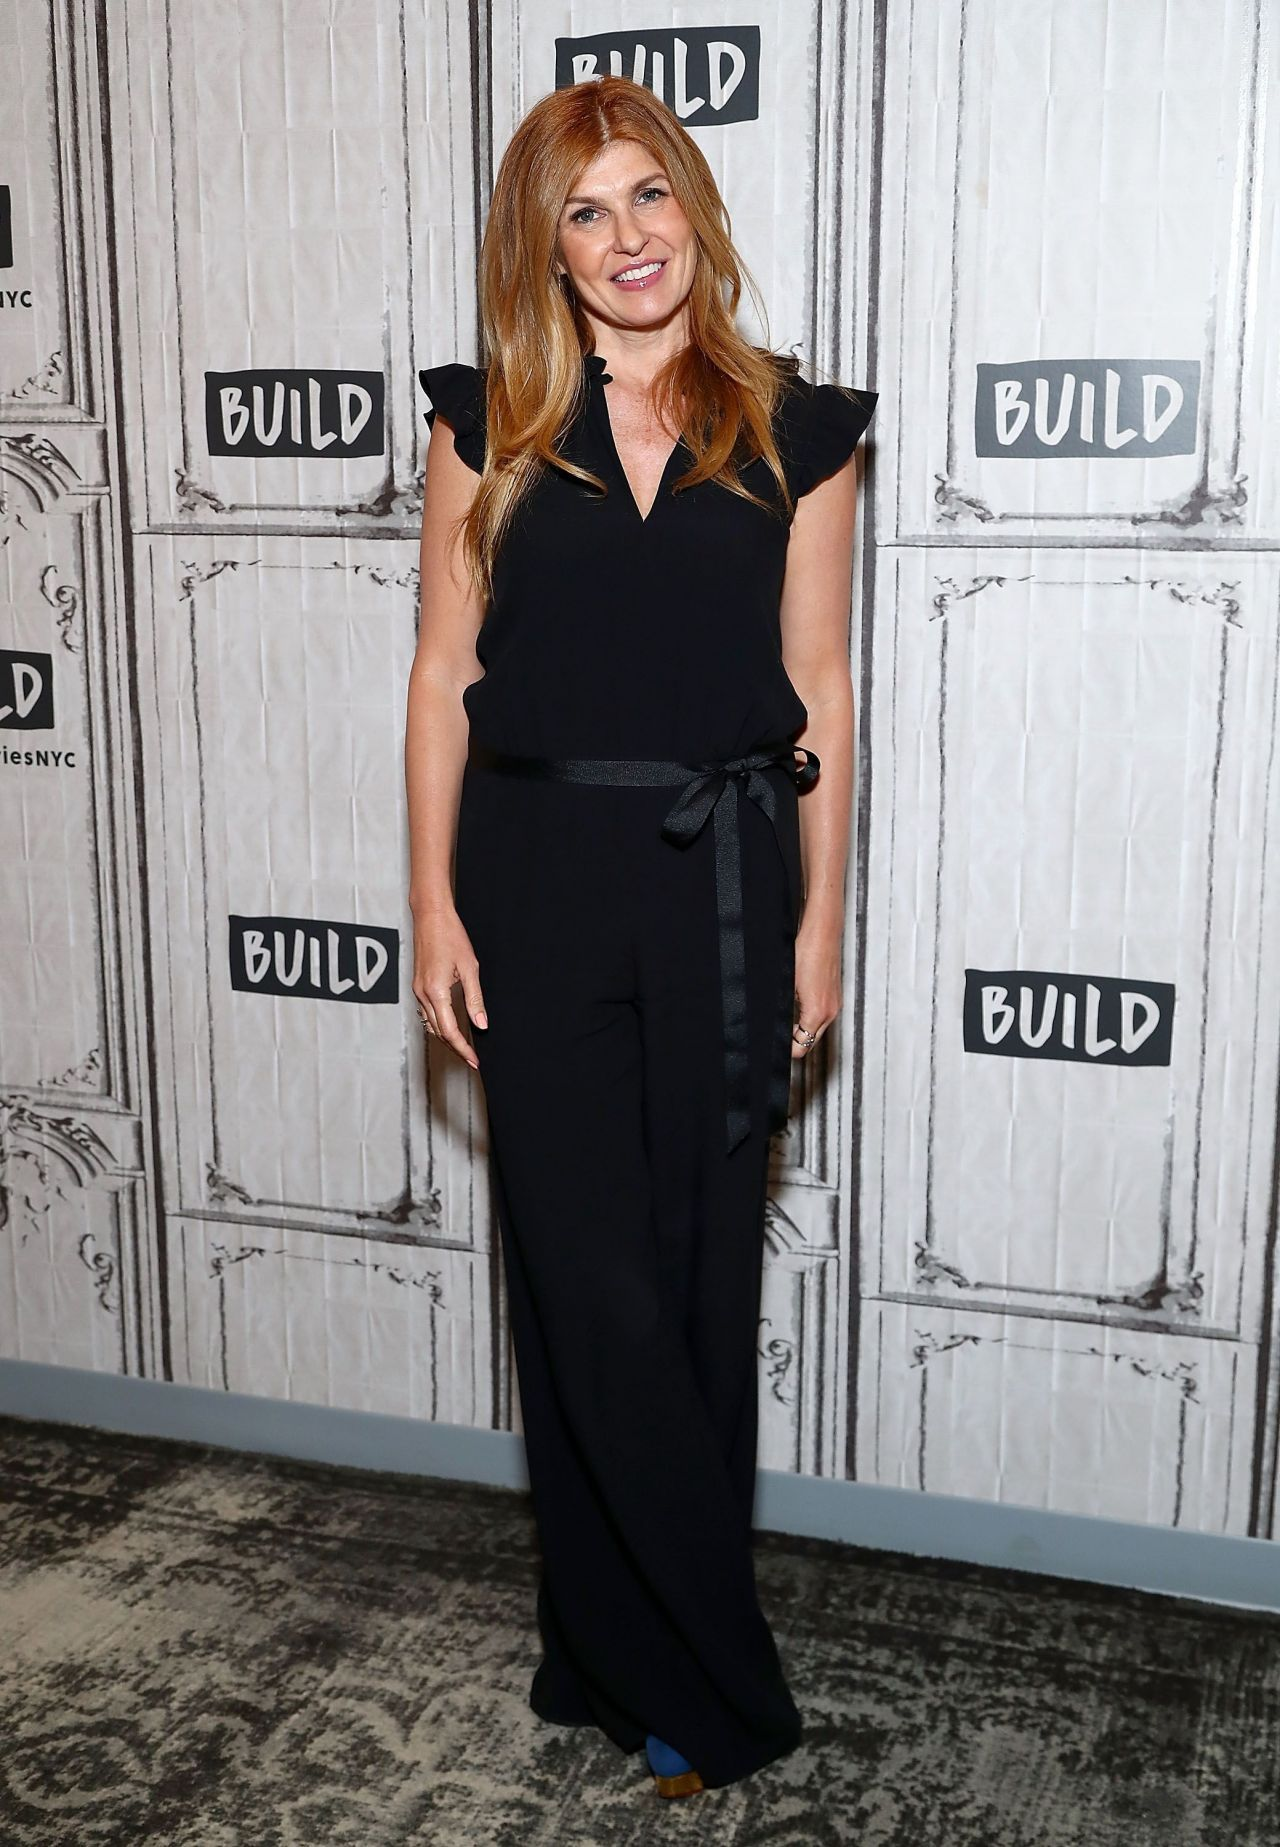 Connie britton beatriz at dinner panel in new york city nude (35 photos), Tits Celebrites images